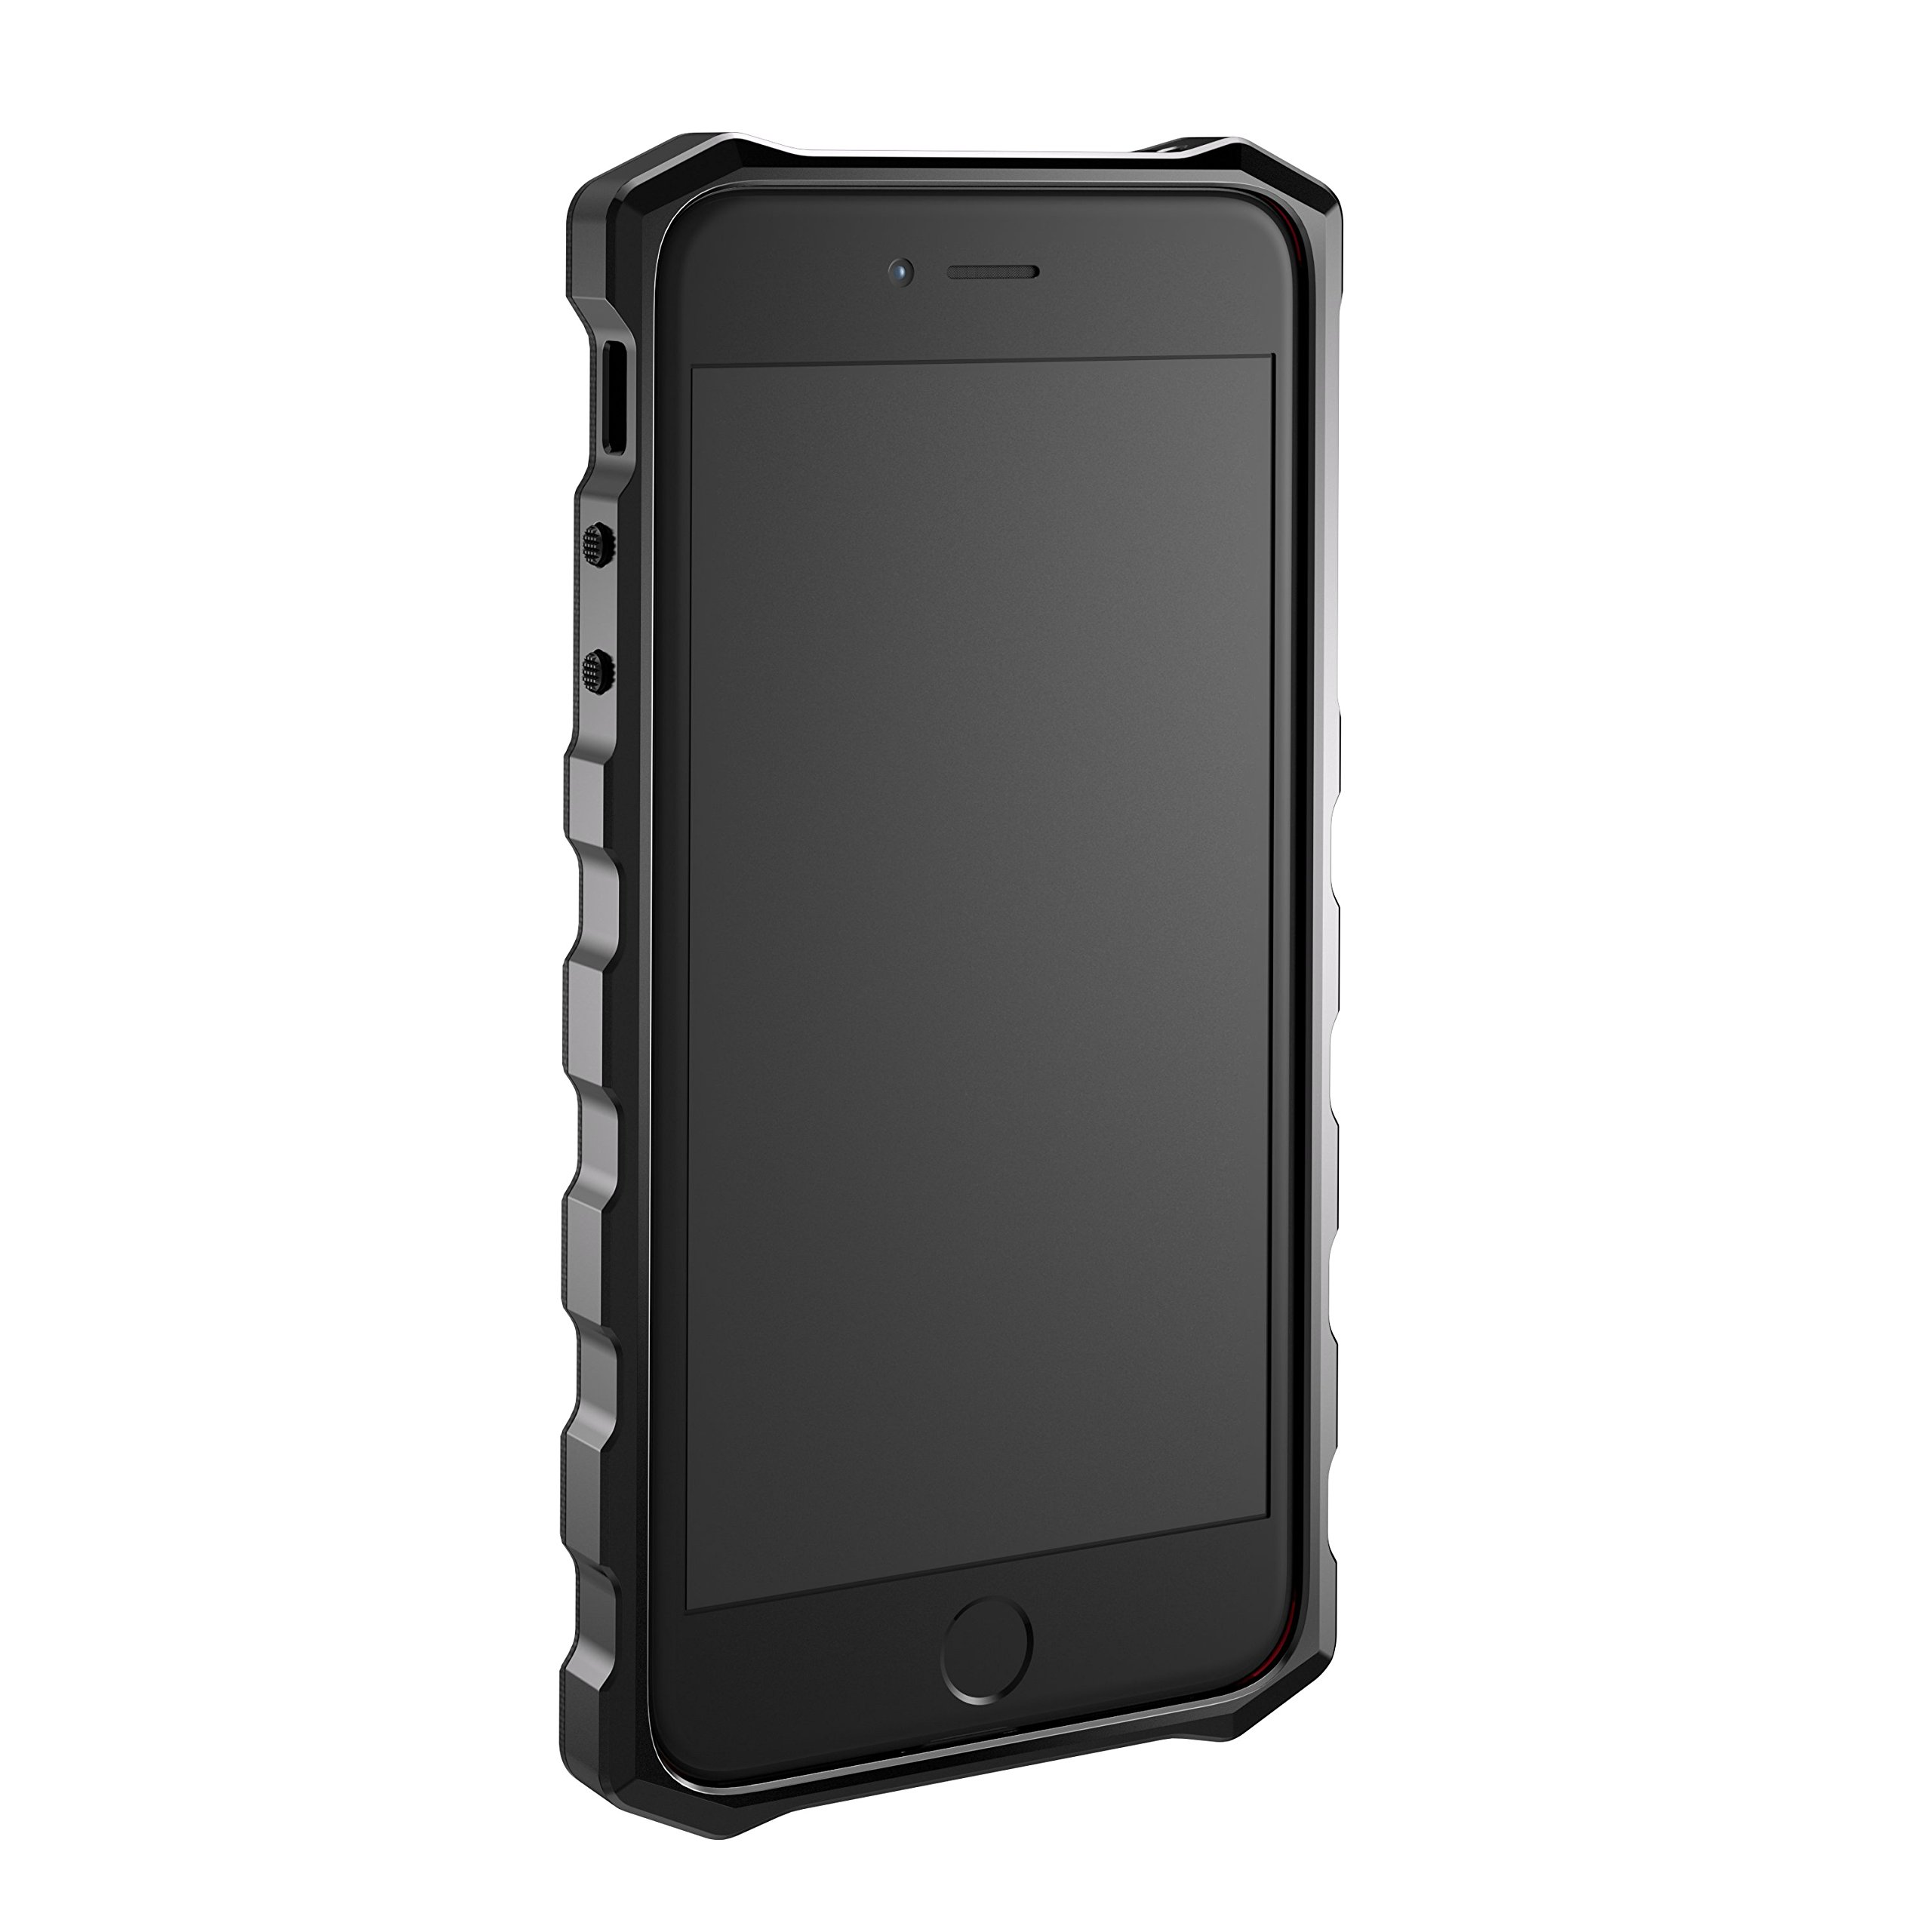 Element Case M7 for iPhone 8 and iPhone 7 Plus (Stealth)